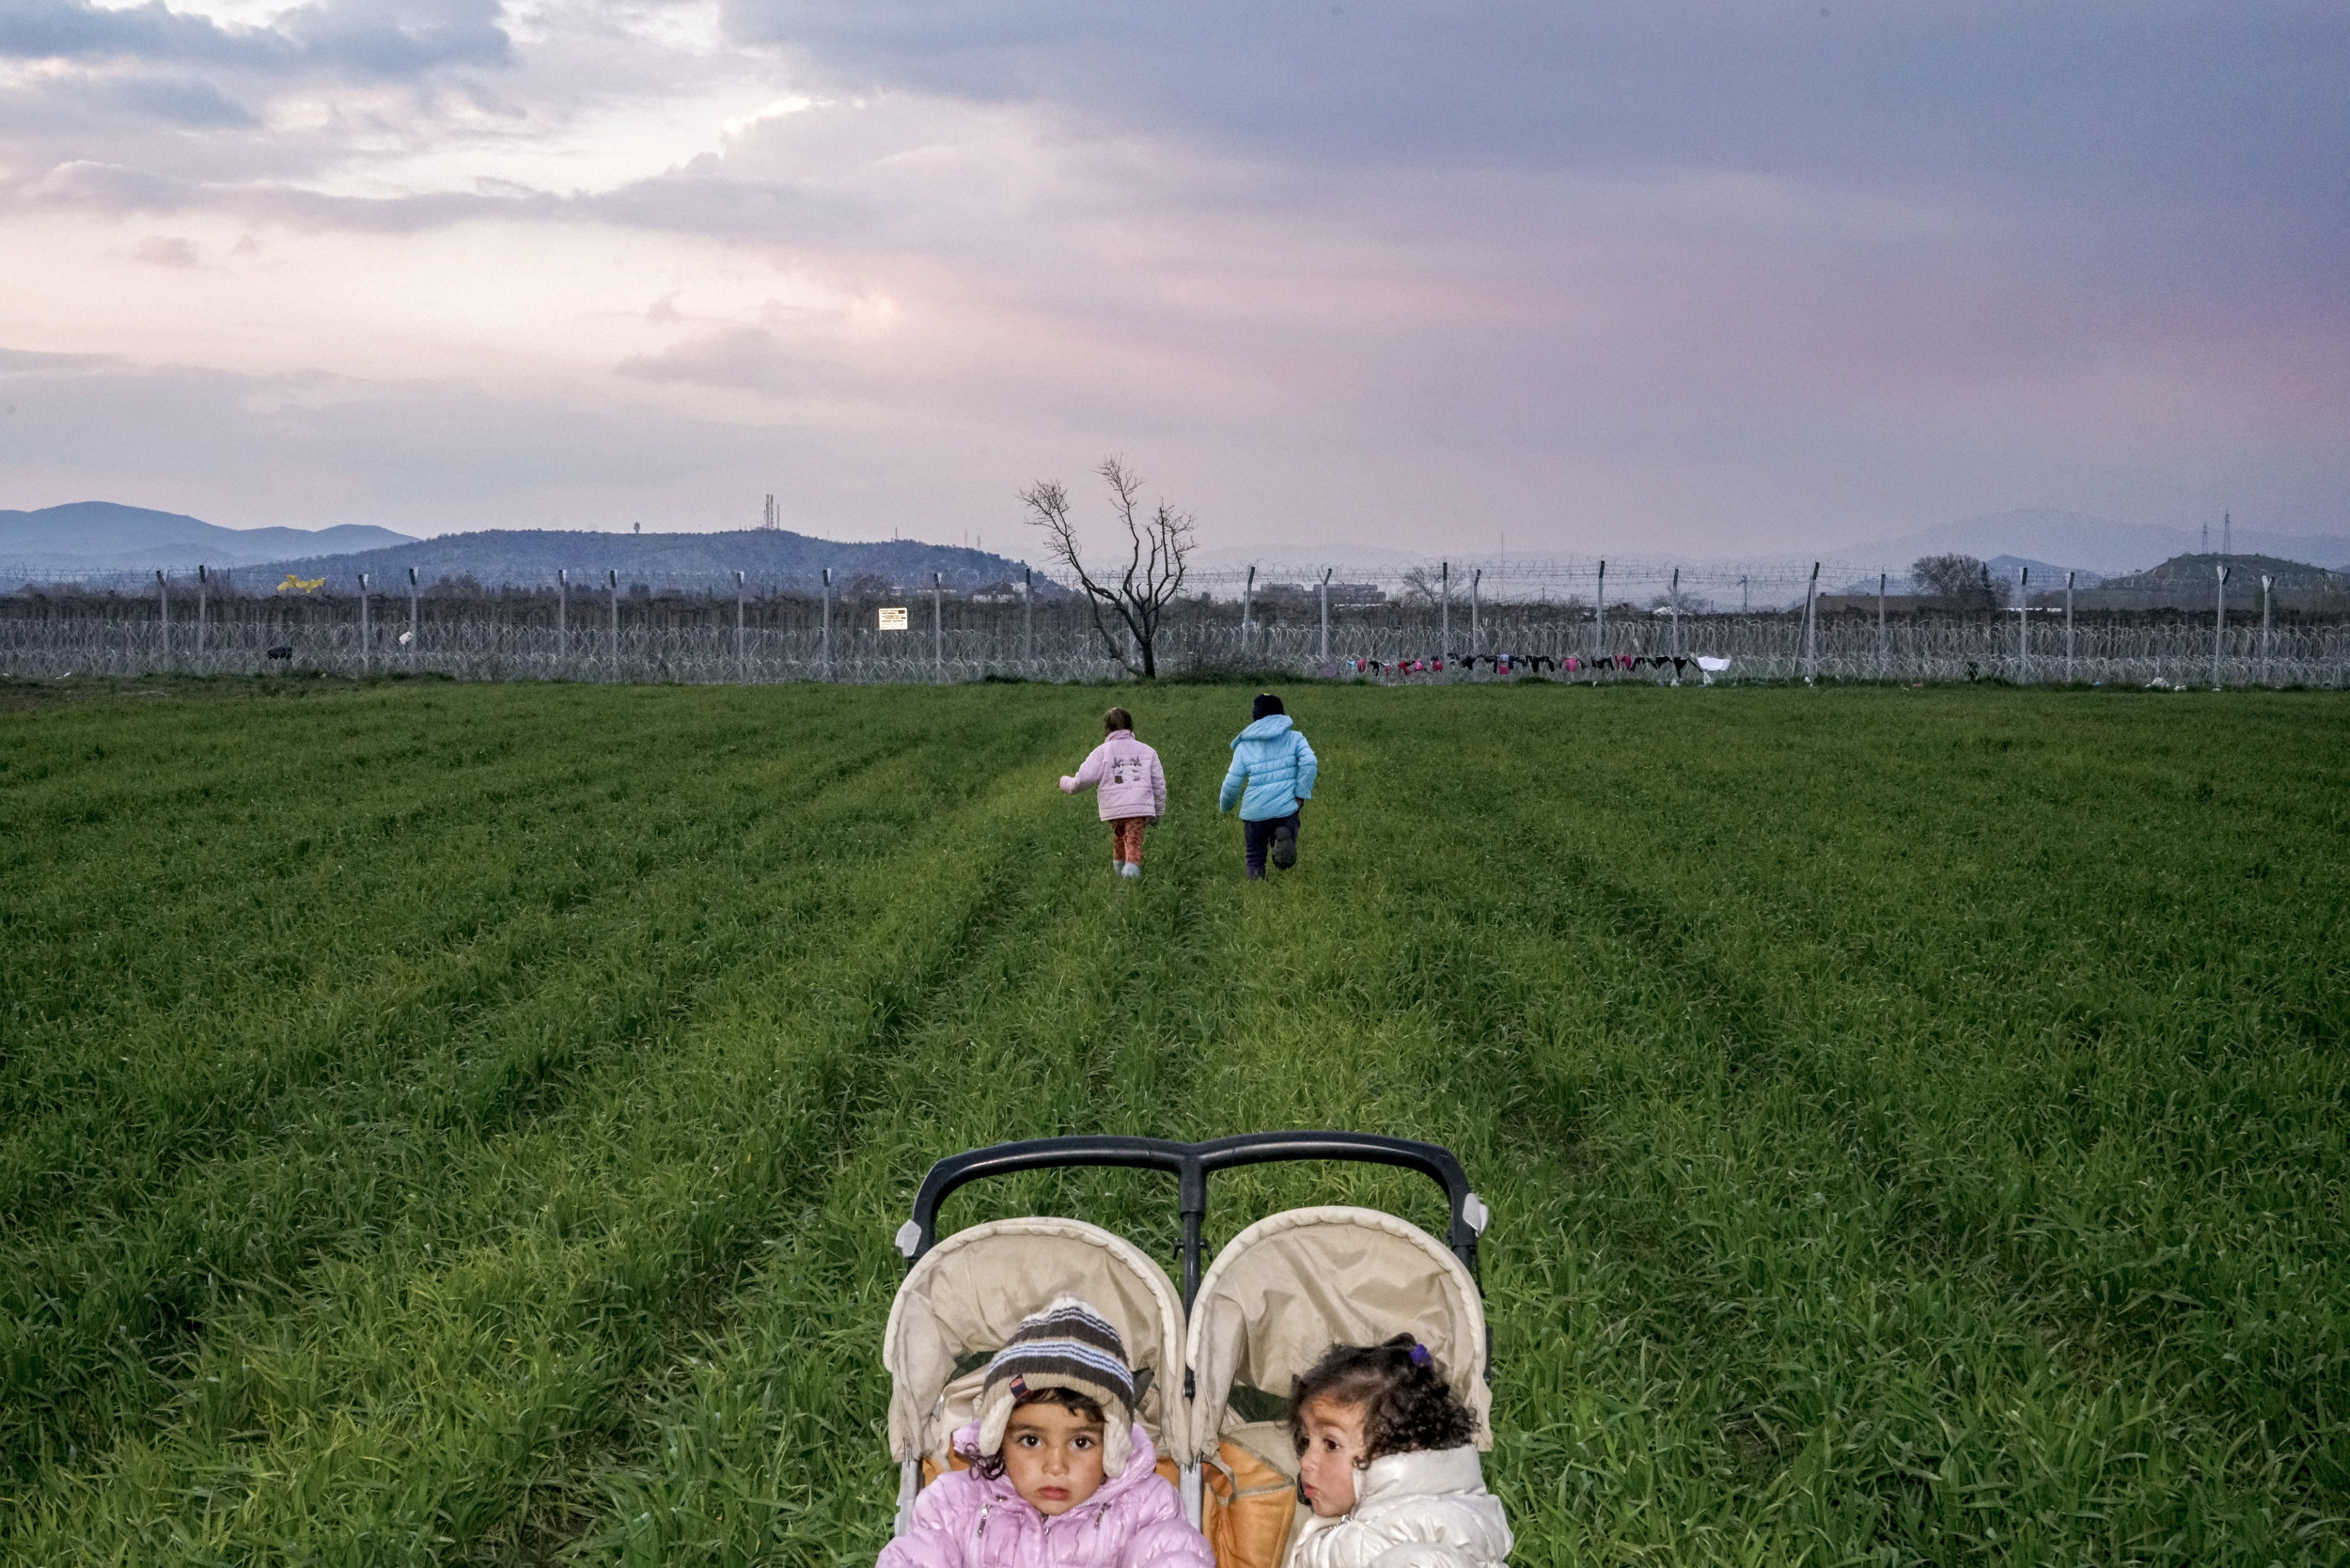 two small children in a push chair while their mothers walk in a field behind barbed wire